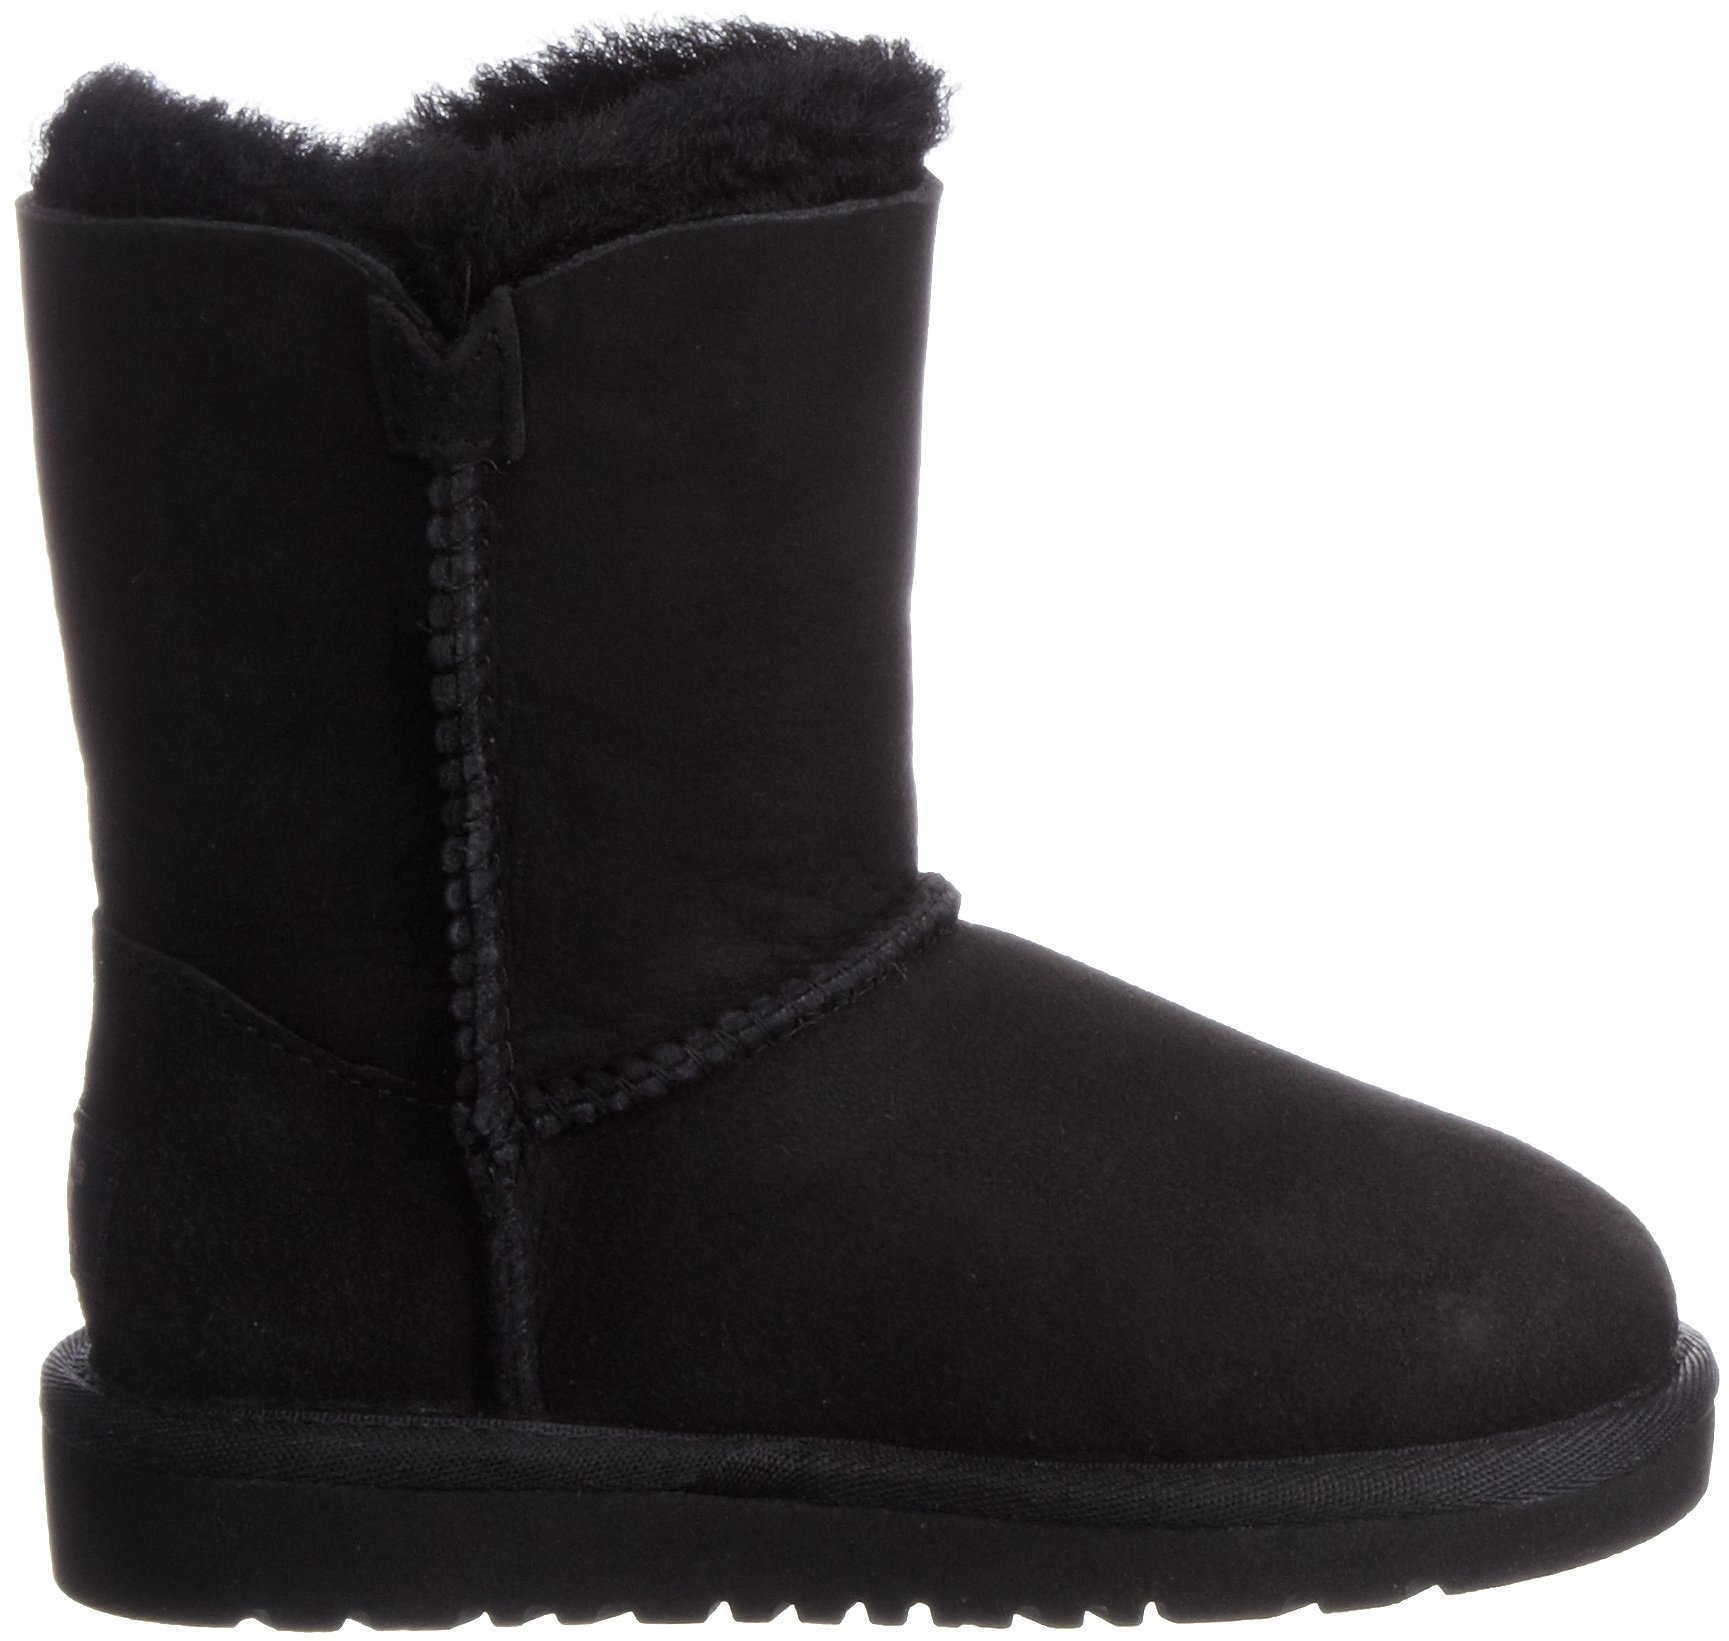 UGG Bailey Button Boot Kids, Black, 6 M US by UGG (Image #6)